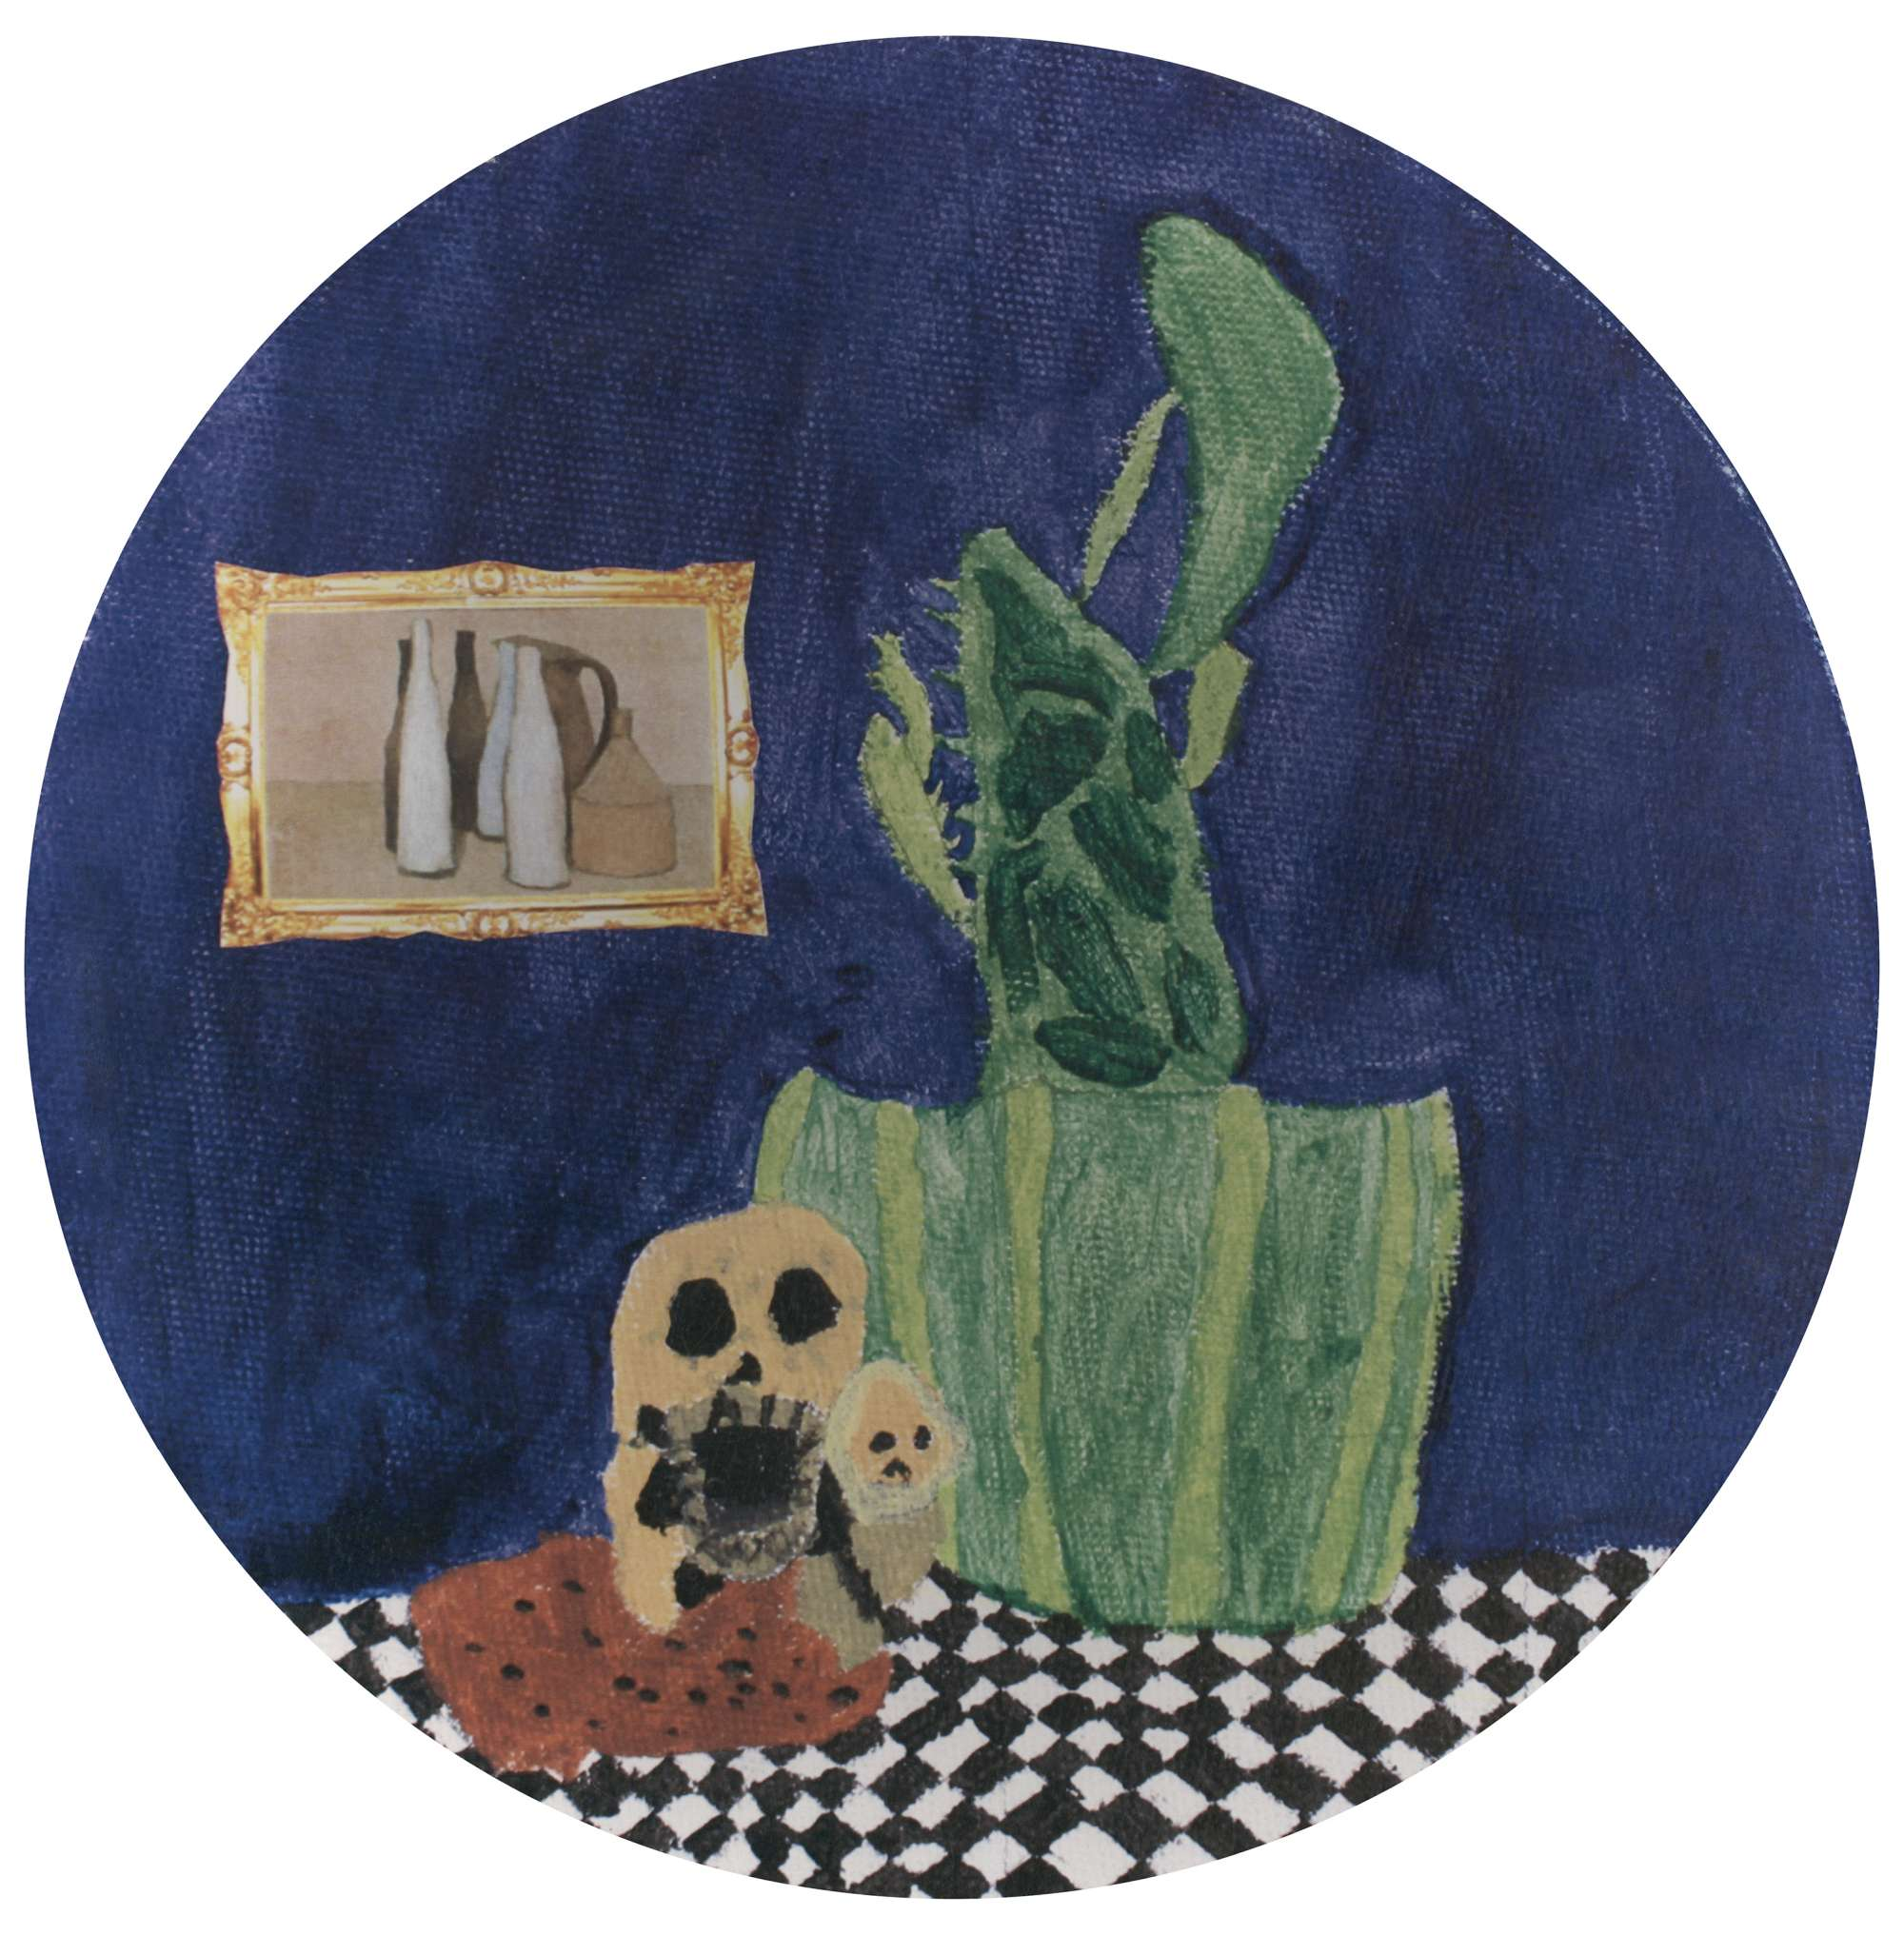 Still Life with Cactus Plant